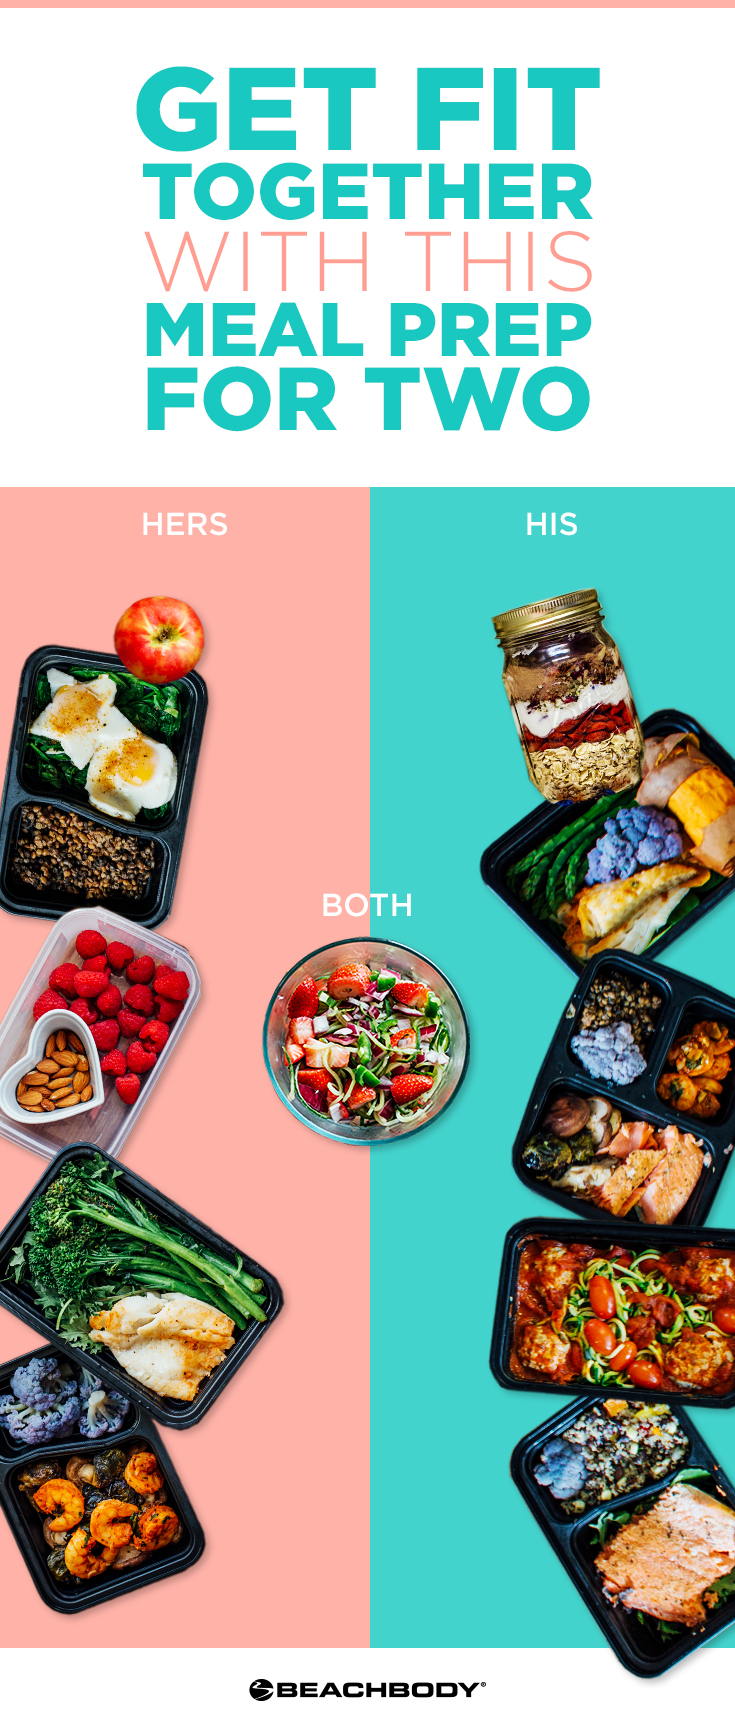 Check out this great meal prep for two! simple meal prep recipes! Perfect for staying healthy even when you're busy. #mealprep #mealpreps #mealplanning #21dayfix #21dayfixideas #21dayfixrecipes #21dayfixmealprep #couplesmealprep